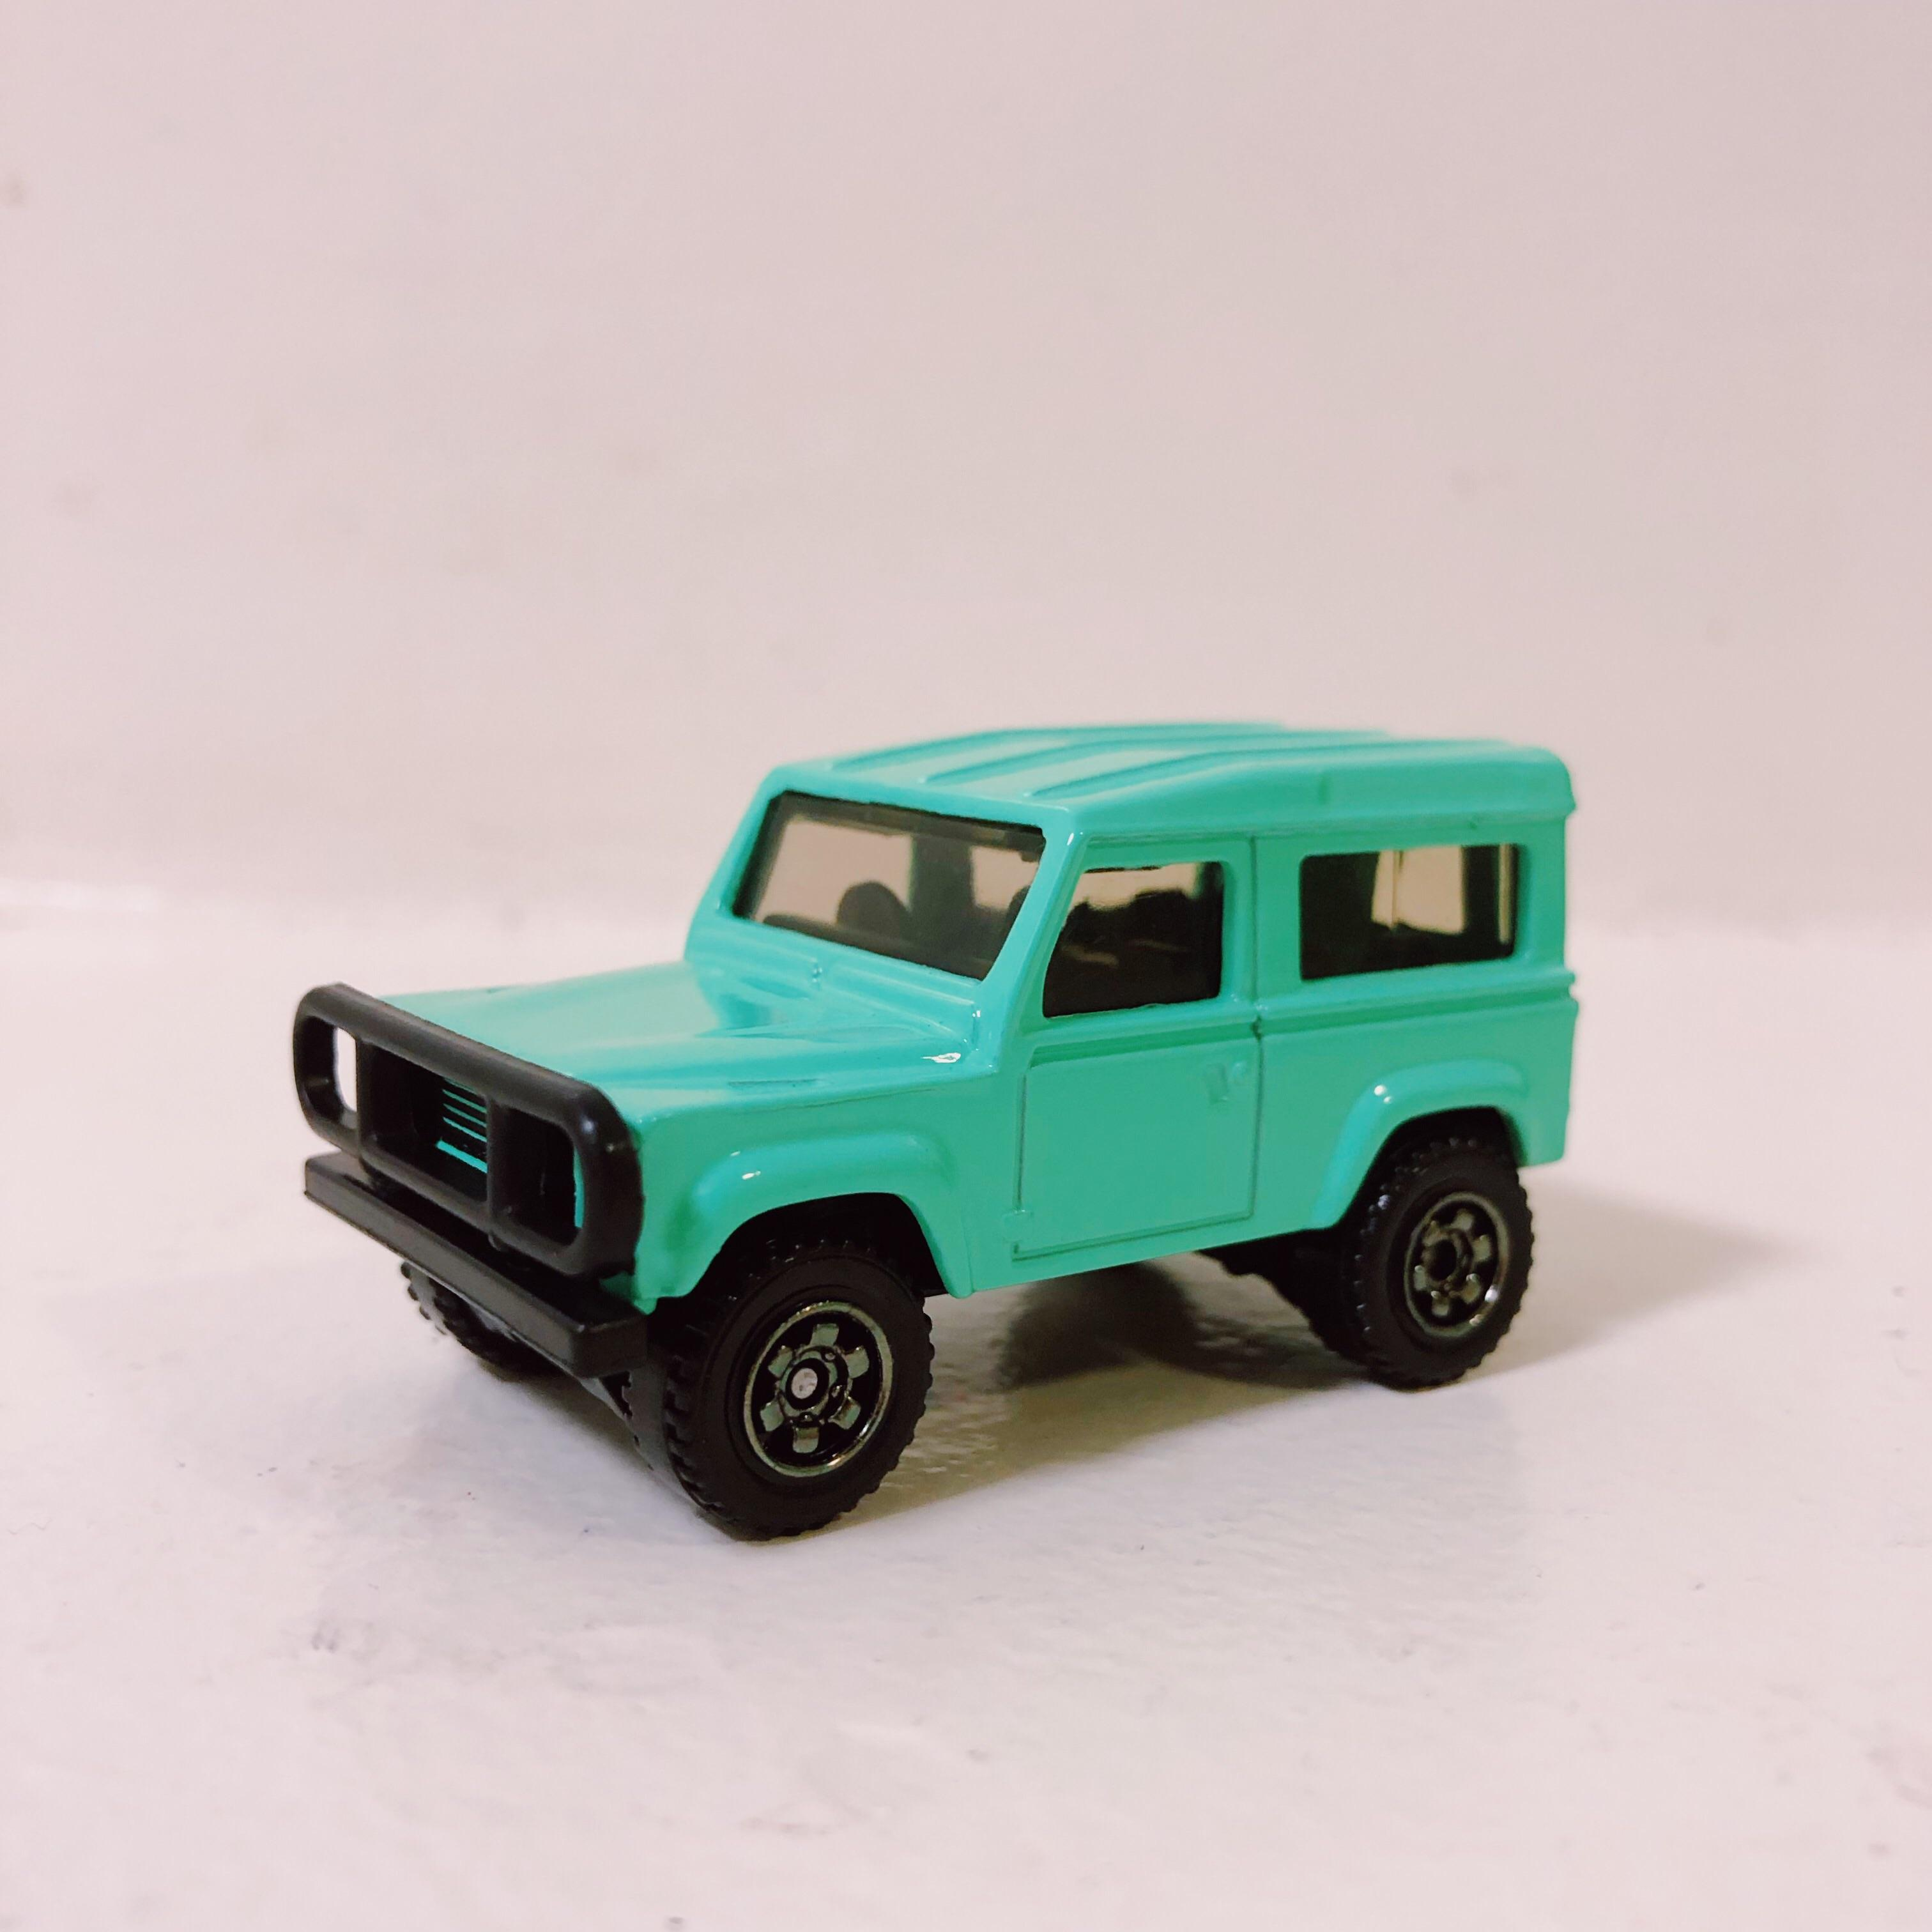 Mb So Mb Land Rover 90 My Favorite Mb For 2018 So Far Hotwheels